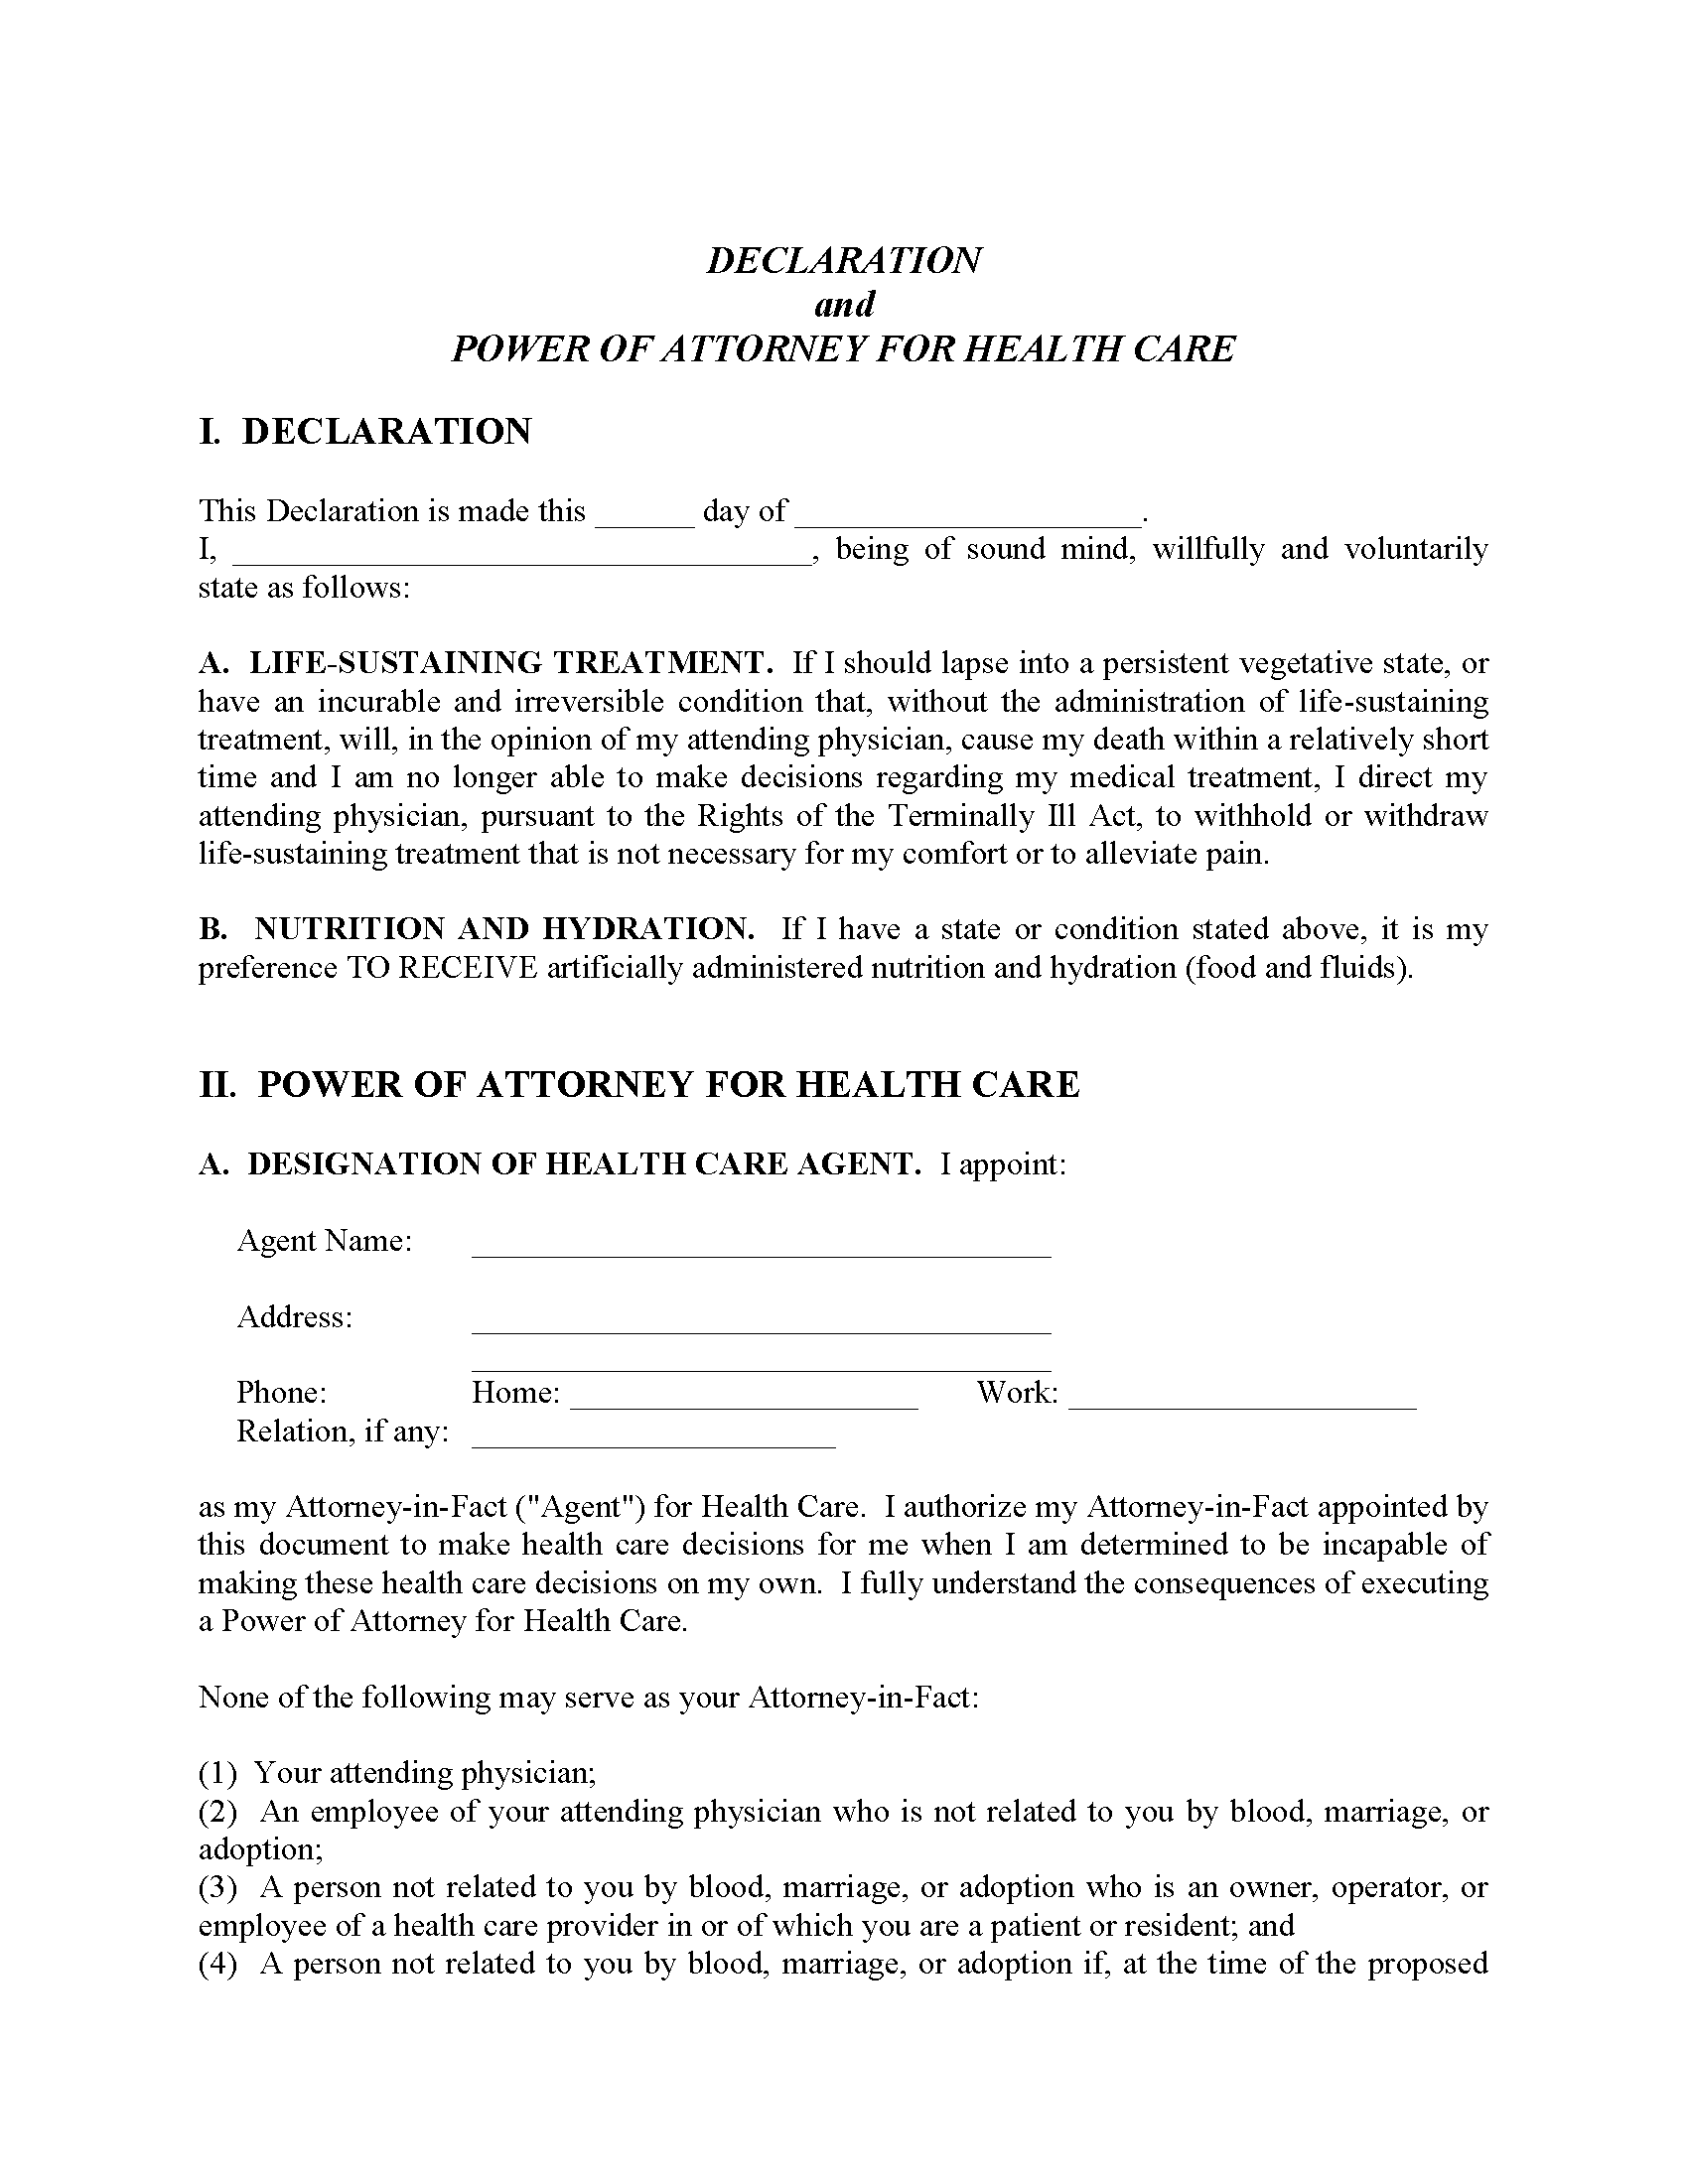 Arkansas Living Will Form Free Printable Legal Forms